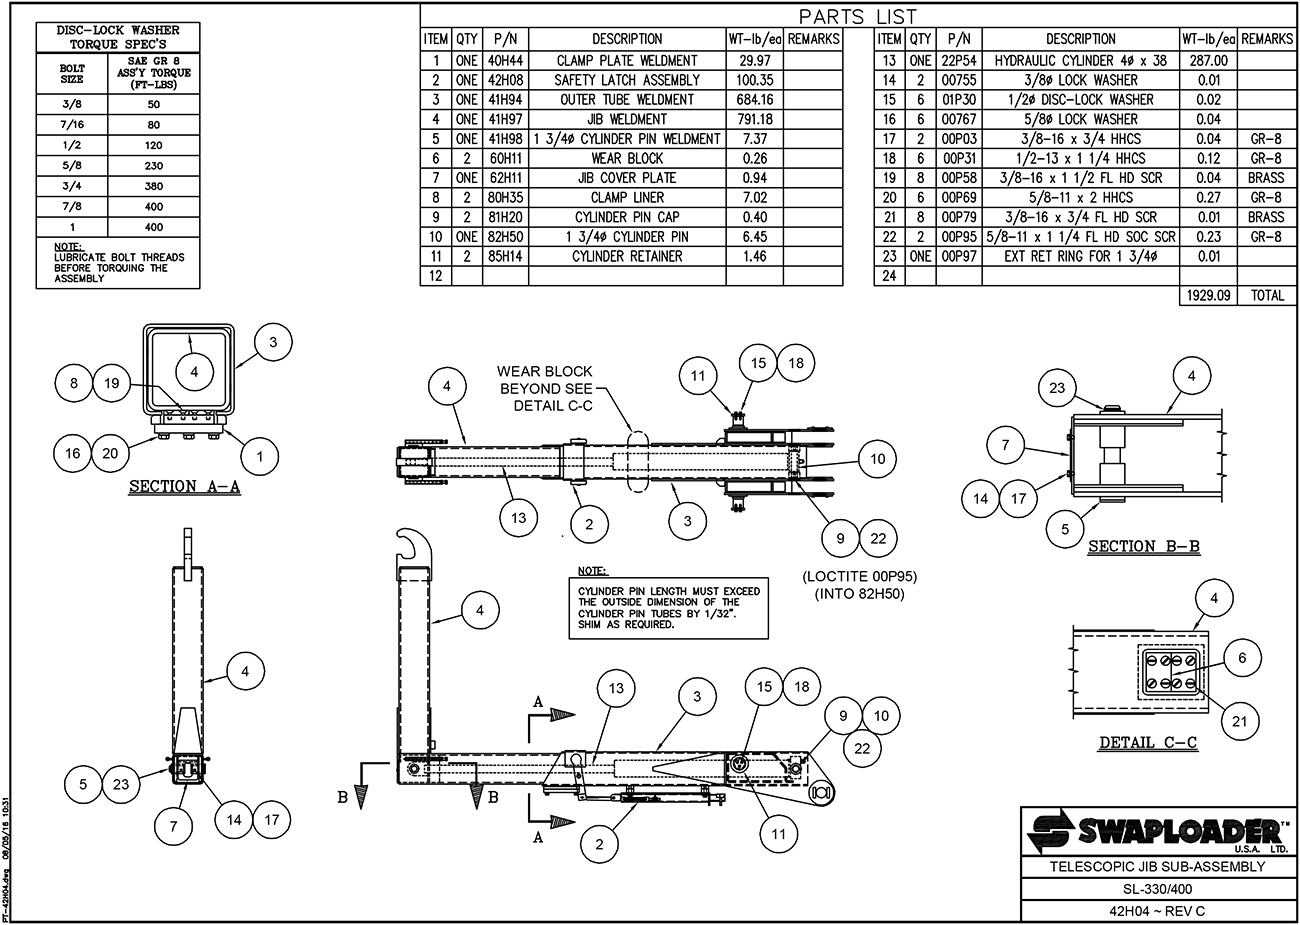 SL-330/400 Telescopic Jib Sub-Assembly Diagram